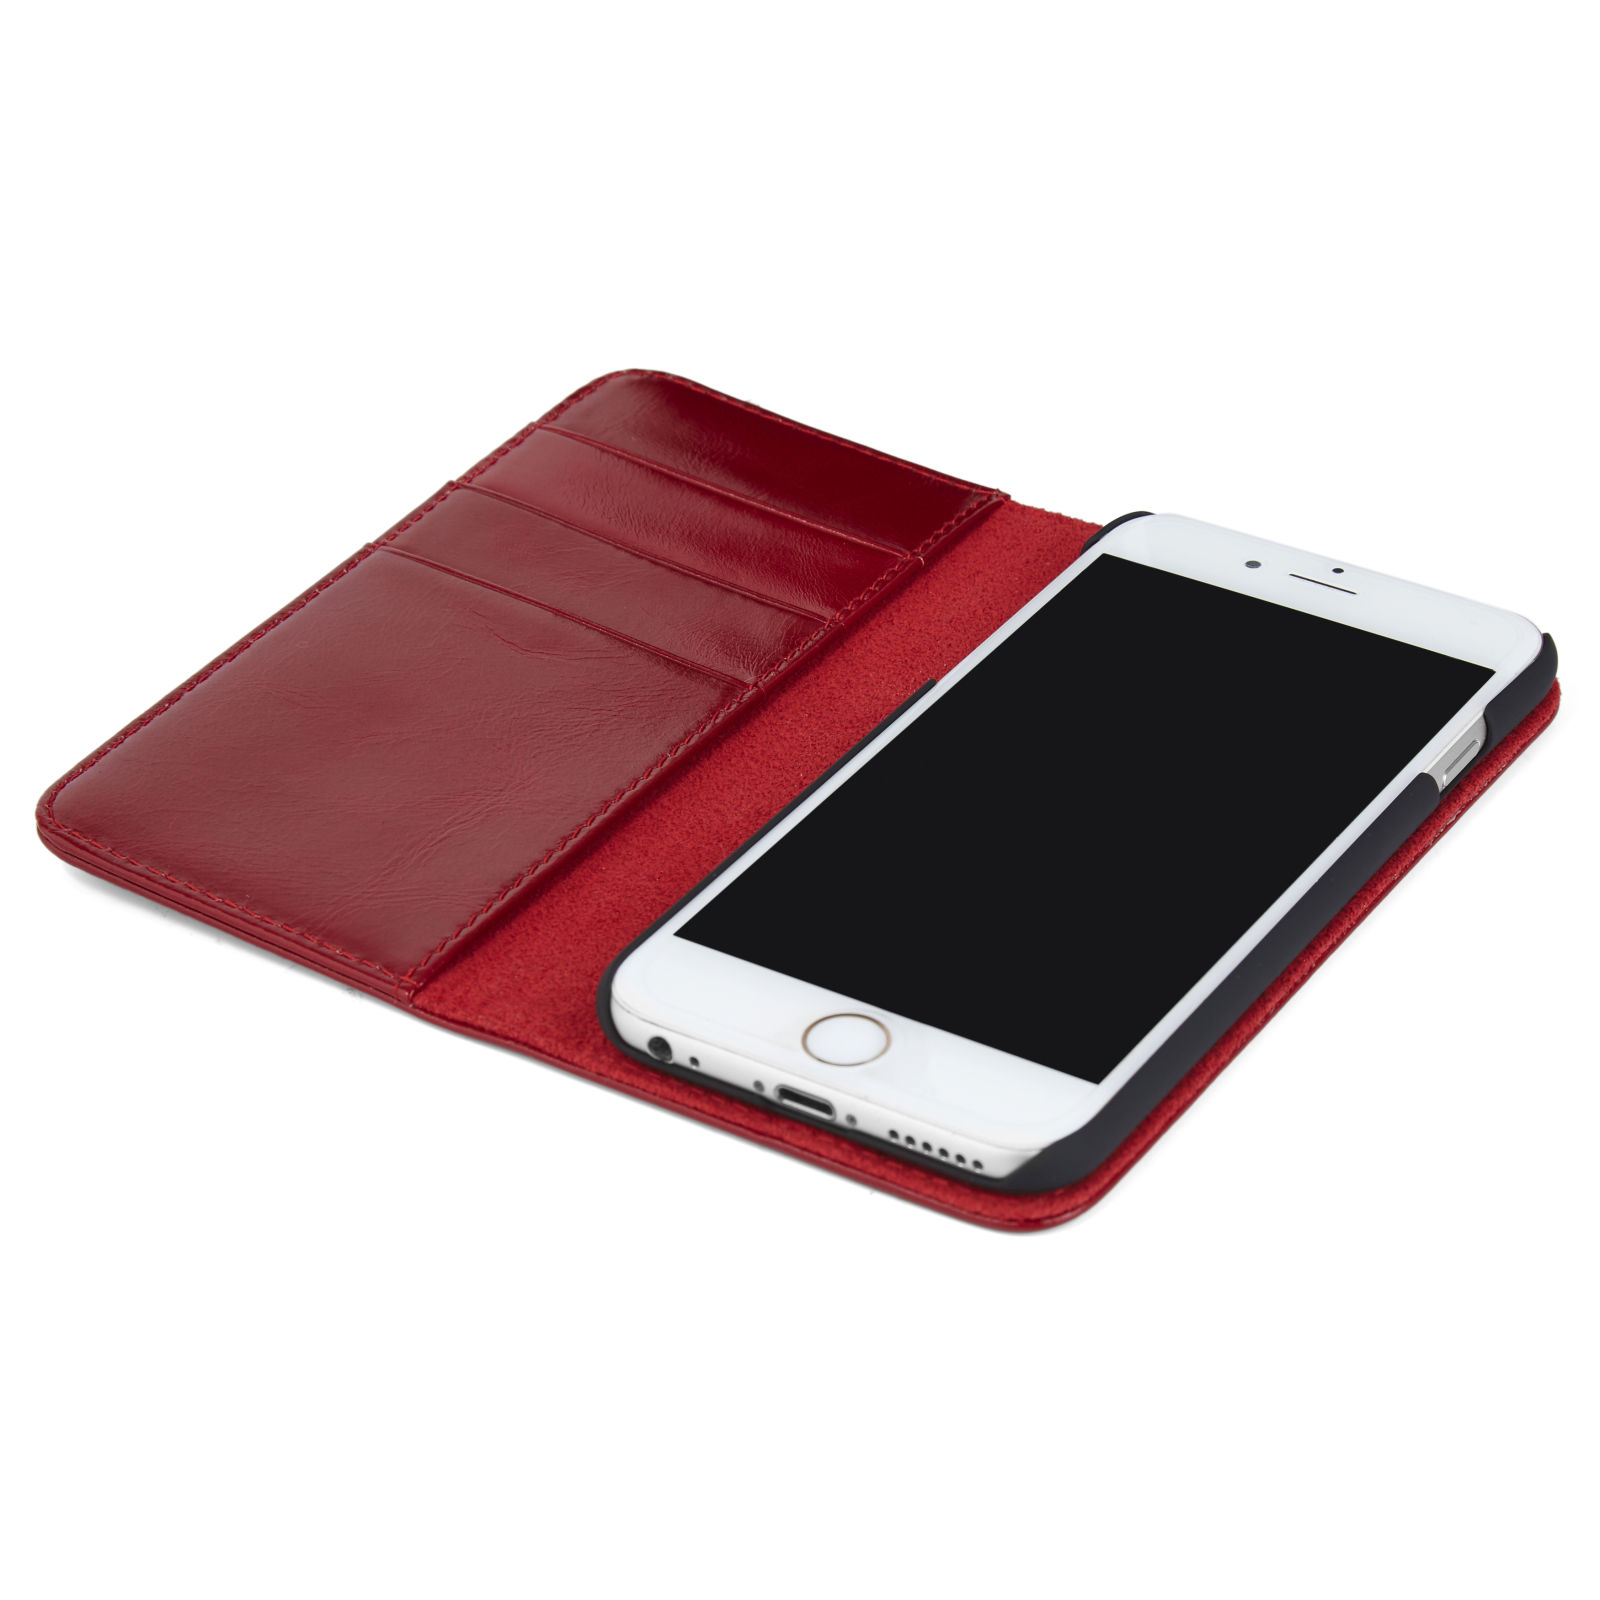 Per Custodia 7 Rossa Iphone In Pelle qRRZxTwzU